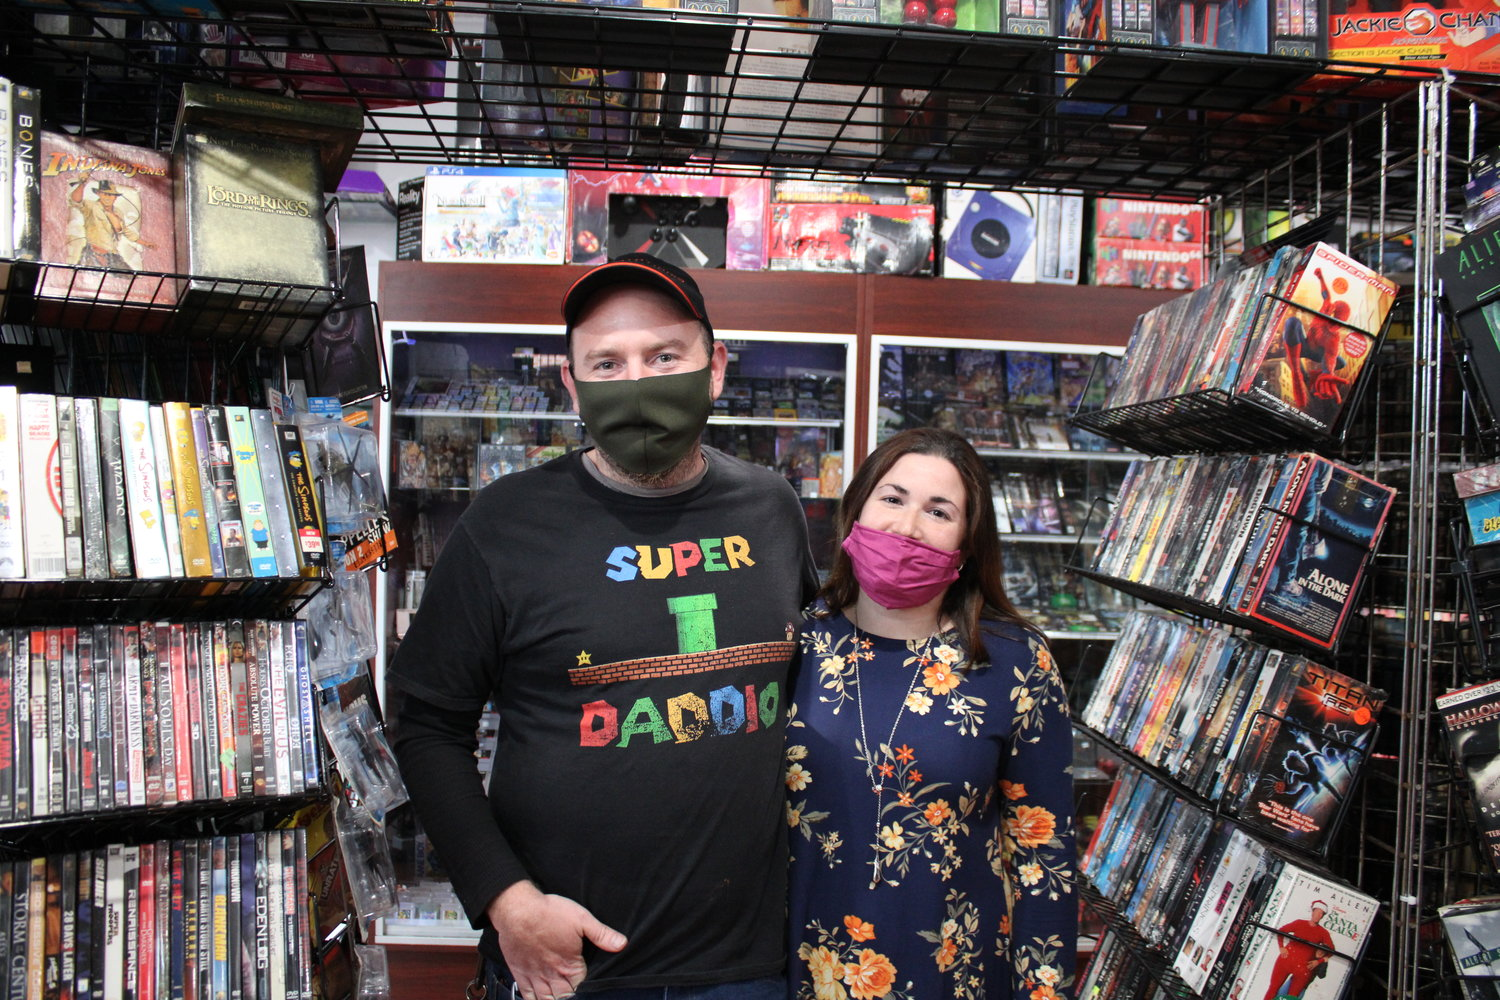 Richard and Christina McWilliams of Islip opened Blast From The Past on 125 West Main Street in Bay Shore last week. The shop will host a grand opening Dec. 11.